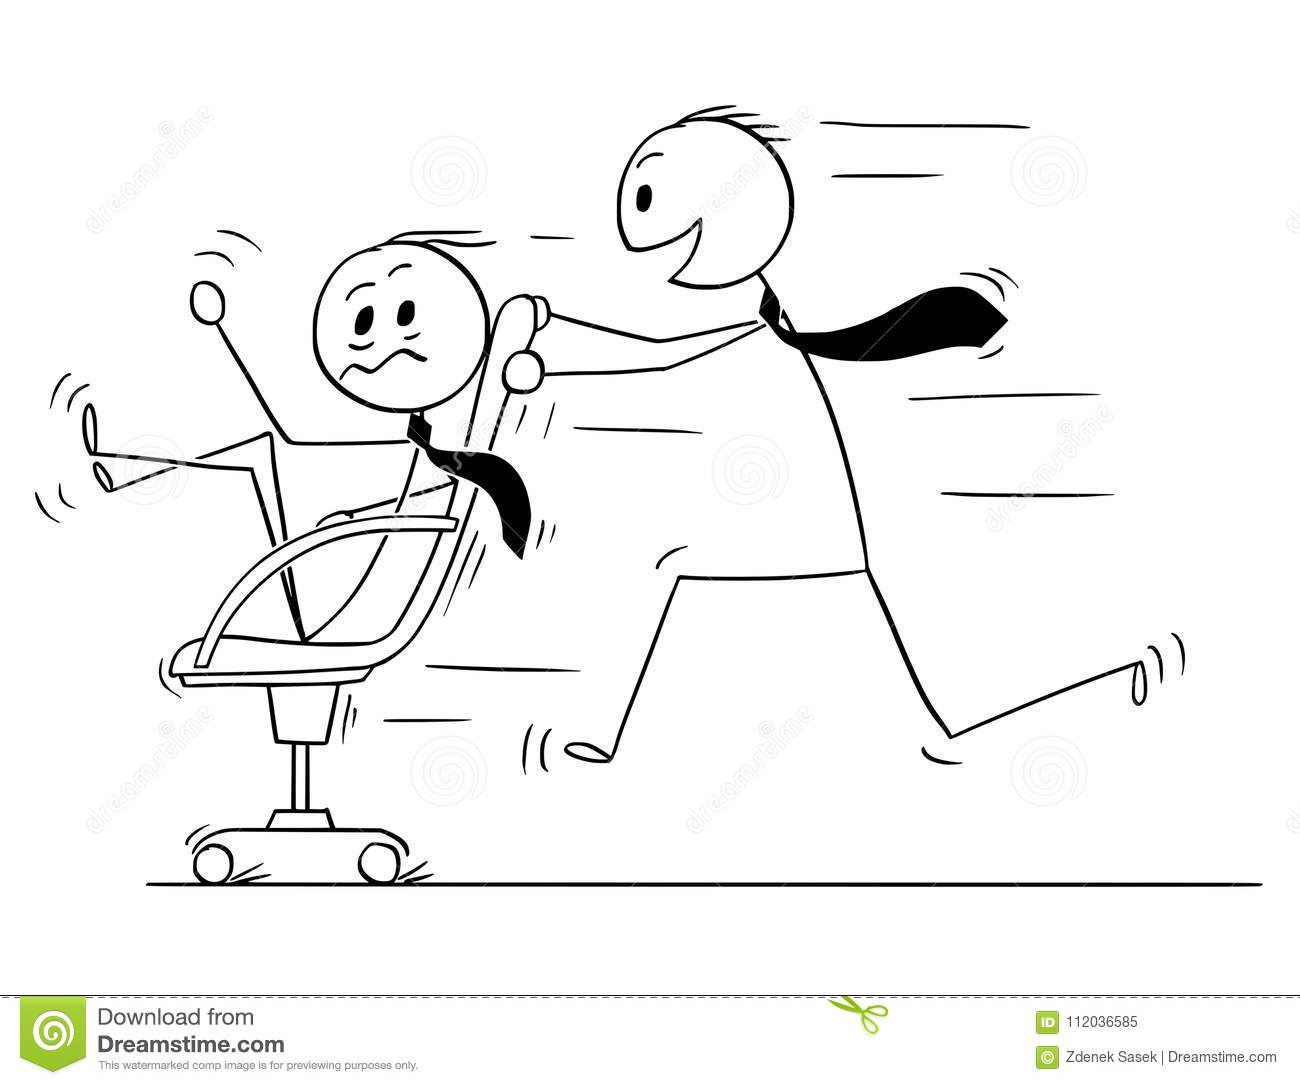 Cartoon Stick Man Drawing Conceptual Illustration Of Businessman Riding On  Office Chair, Second Man Pushing Him. Business Concept Of Fun In The Office.